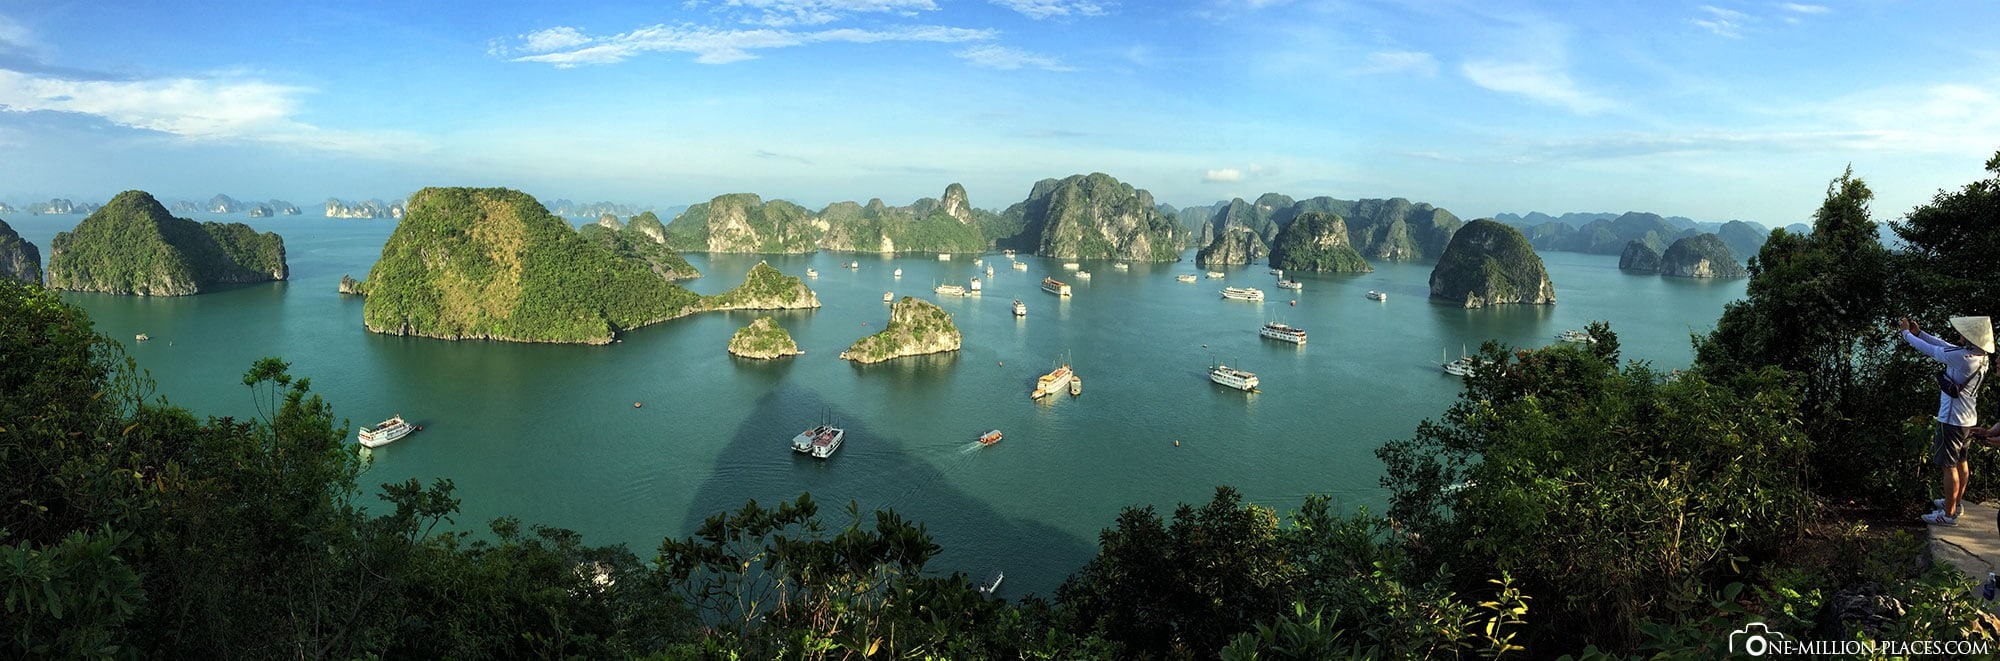 Panoramic view, Halong Bay, Vietnam, 2 day boat tour, cruise, ship, travel report